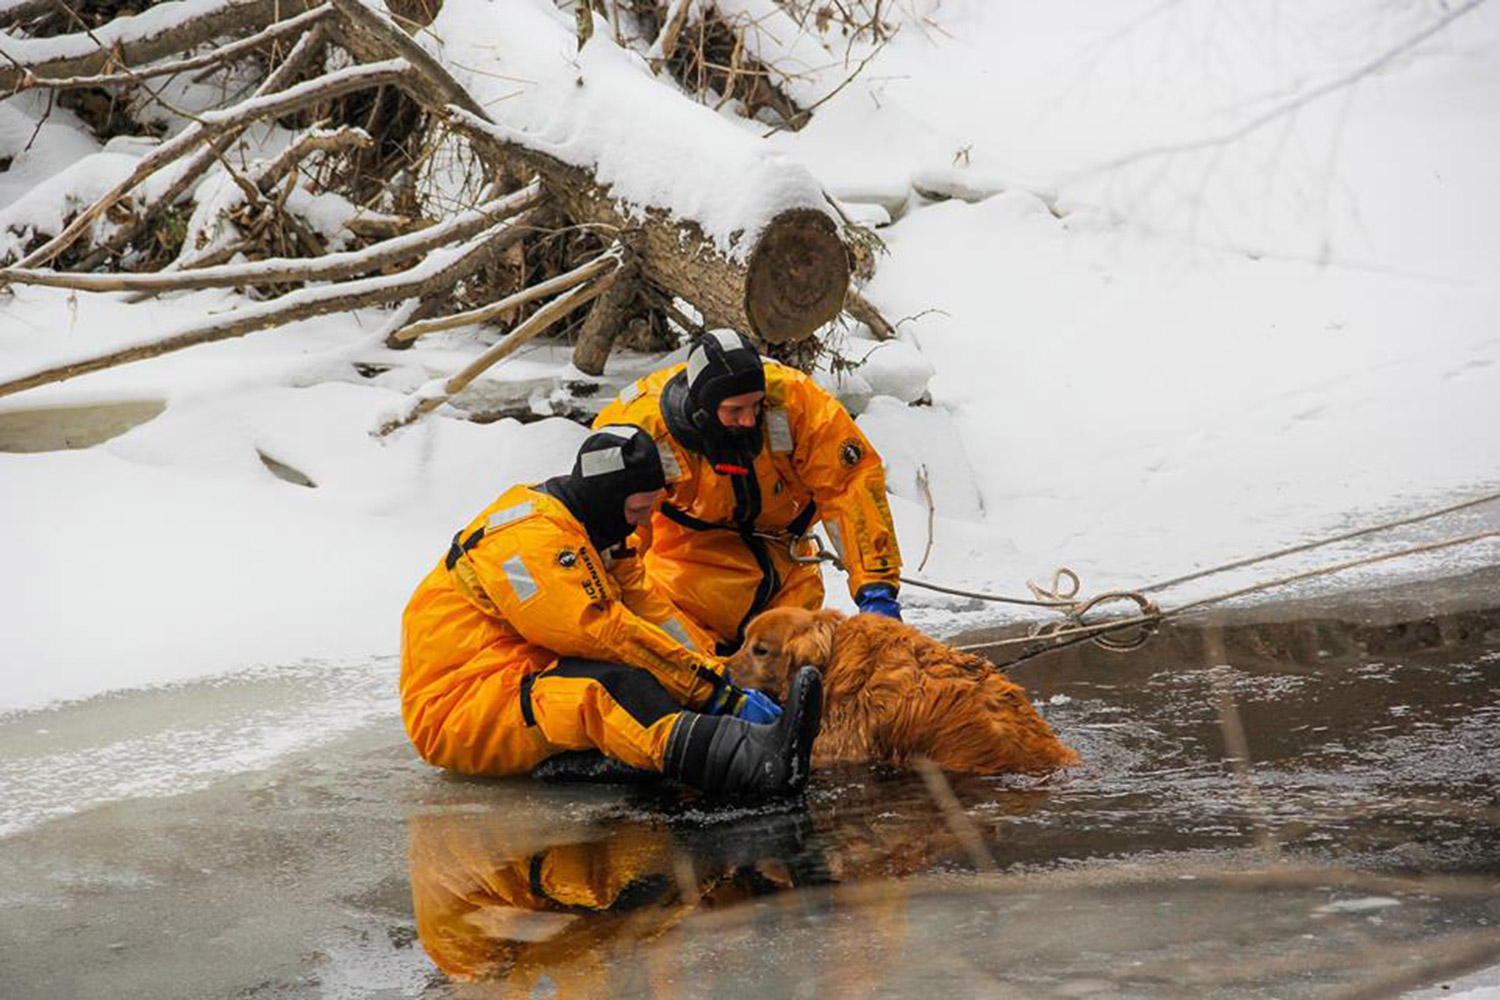 Firefighters Eric Bloom and Dana Curtis rescue Brewer the dog from the frigid Great Works River near Thurrell Road in South Berwick on Wednesday. The dog had been in the water for about an hour before being rescued, according to the department's Facebook page.